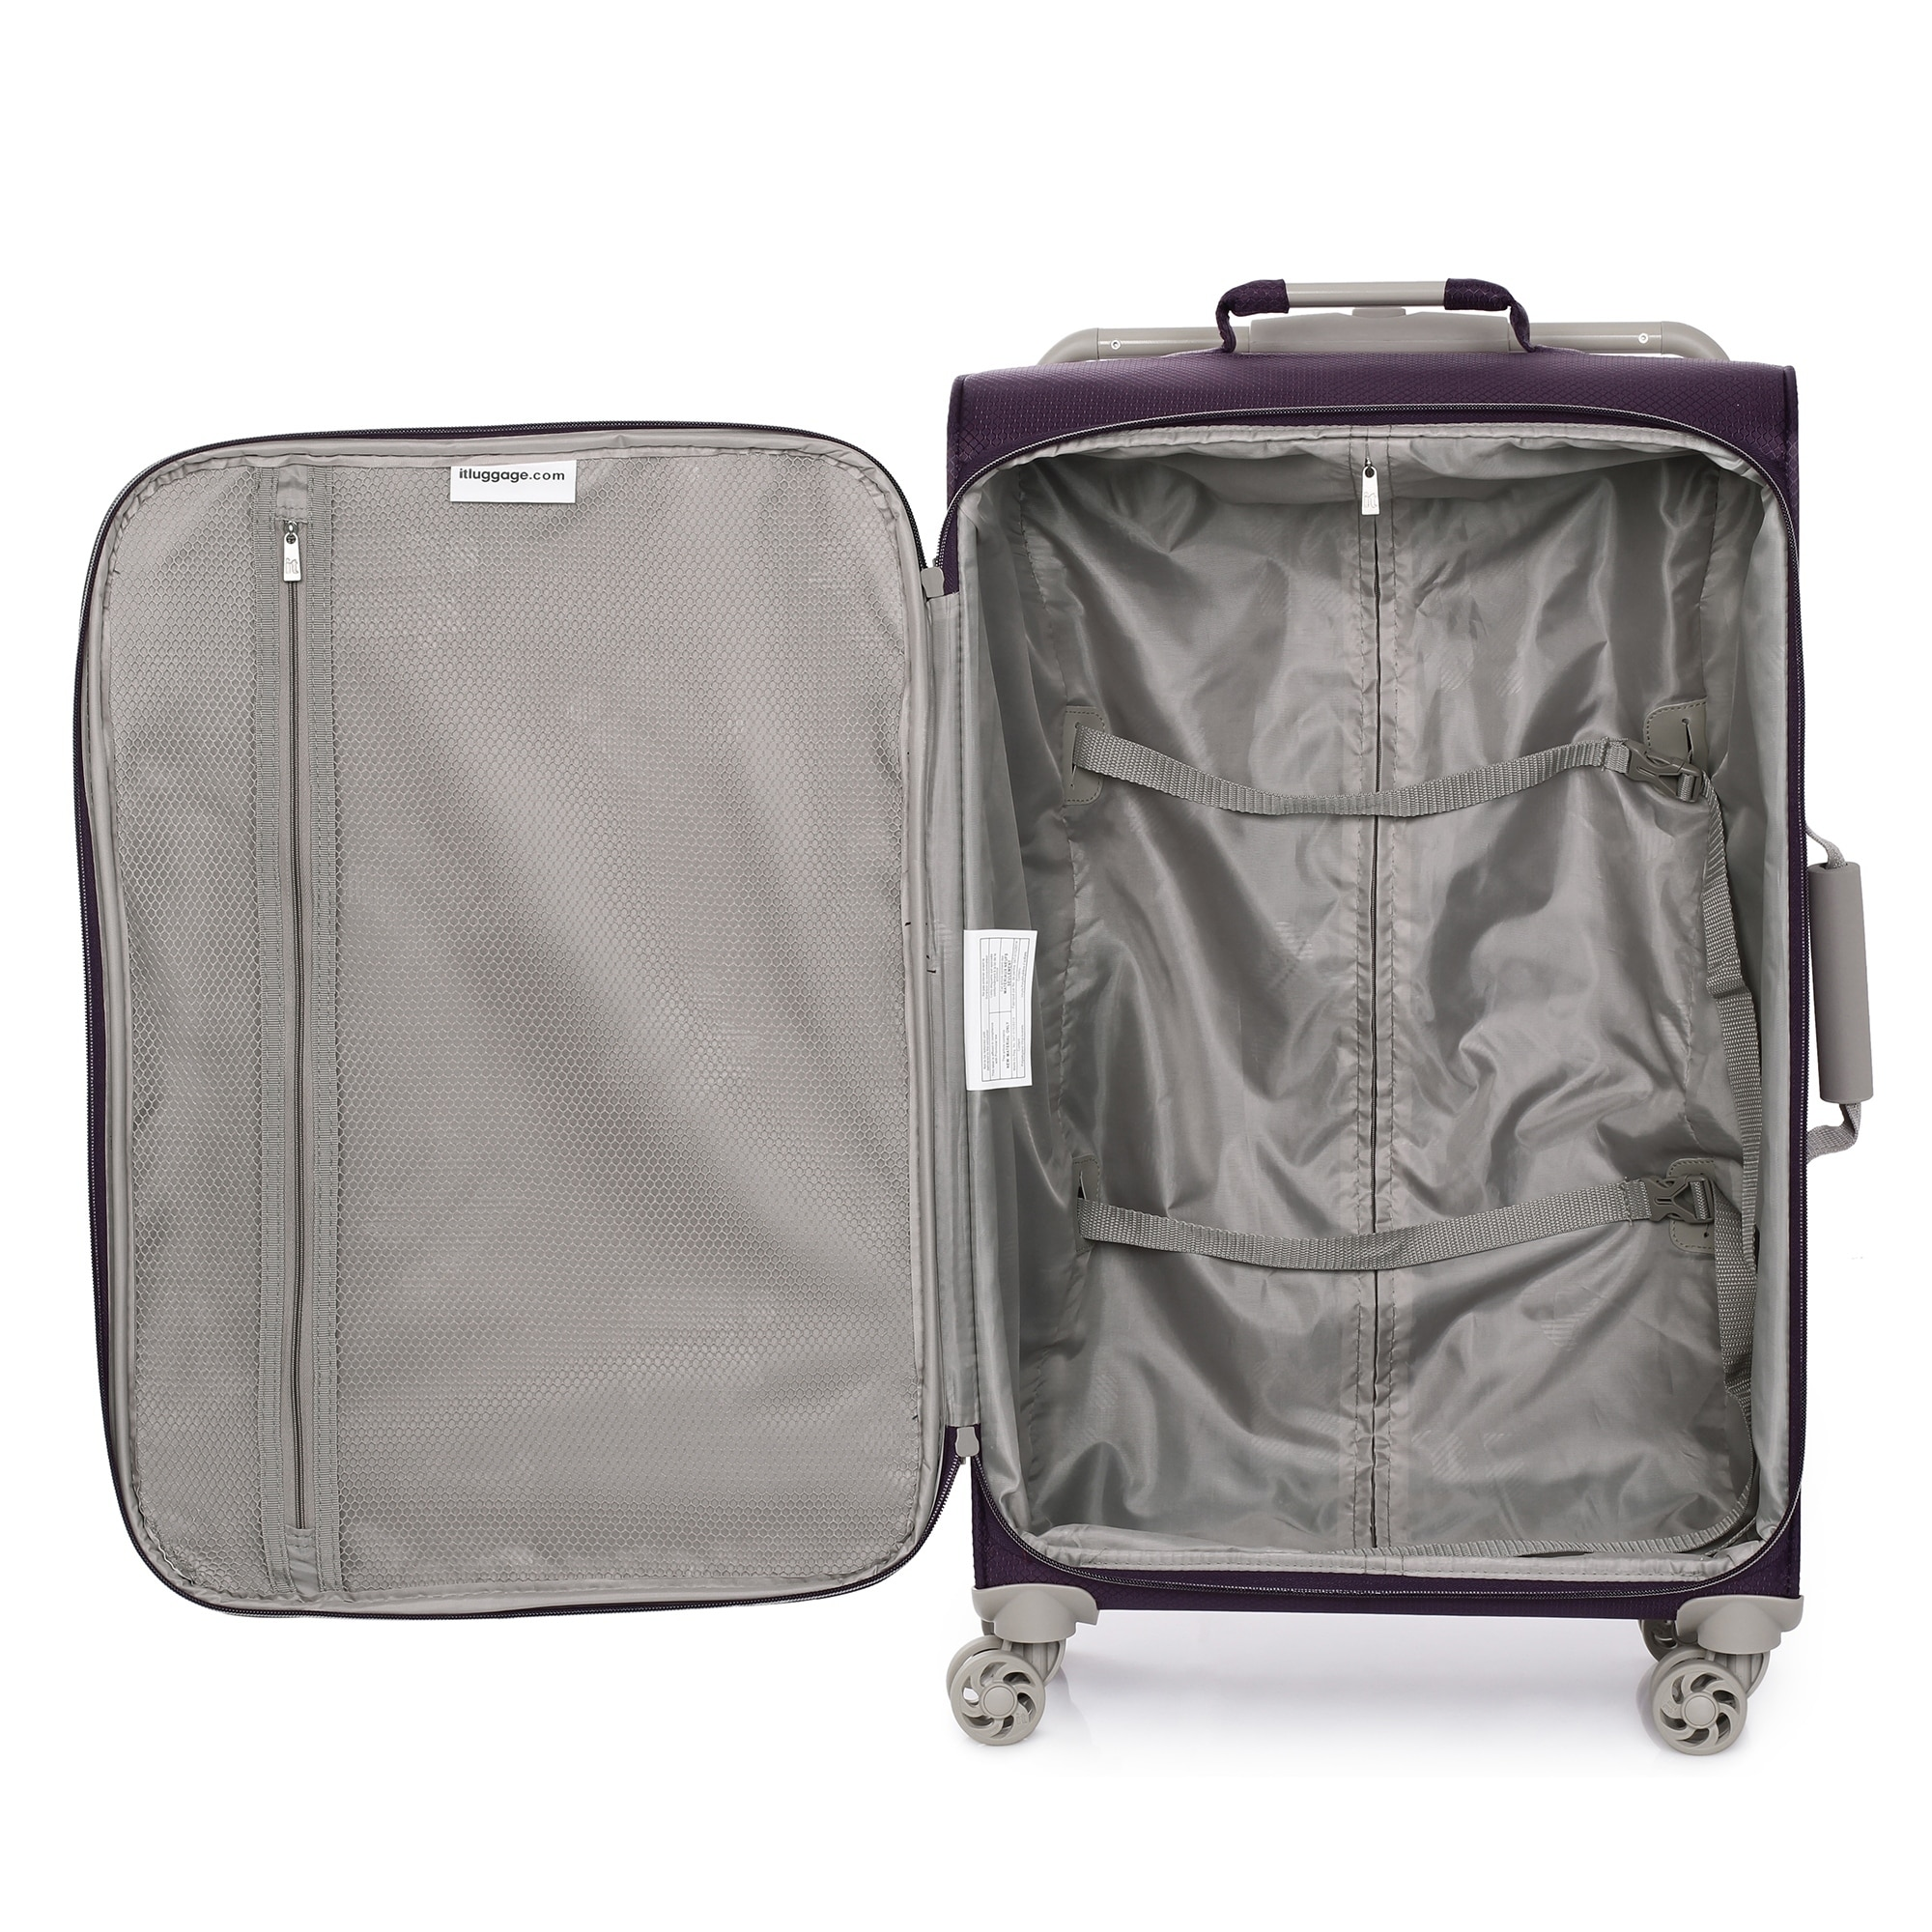 it-luggage-World-039-s-Lightest-27-6-034-Lightweight-Spinner-Suitcase thumbnail 10